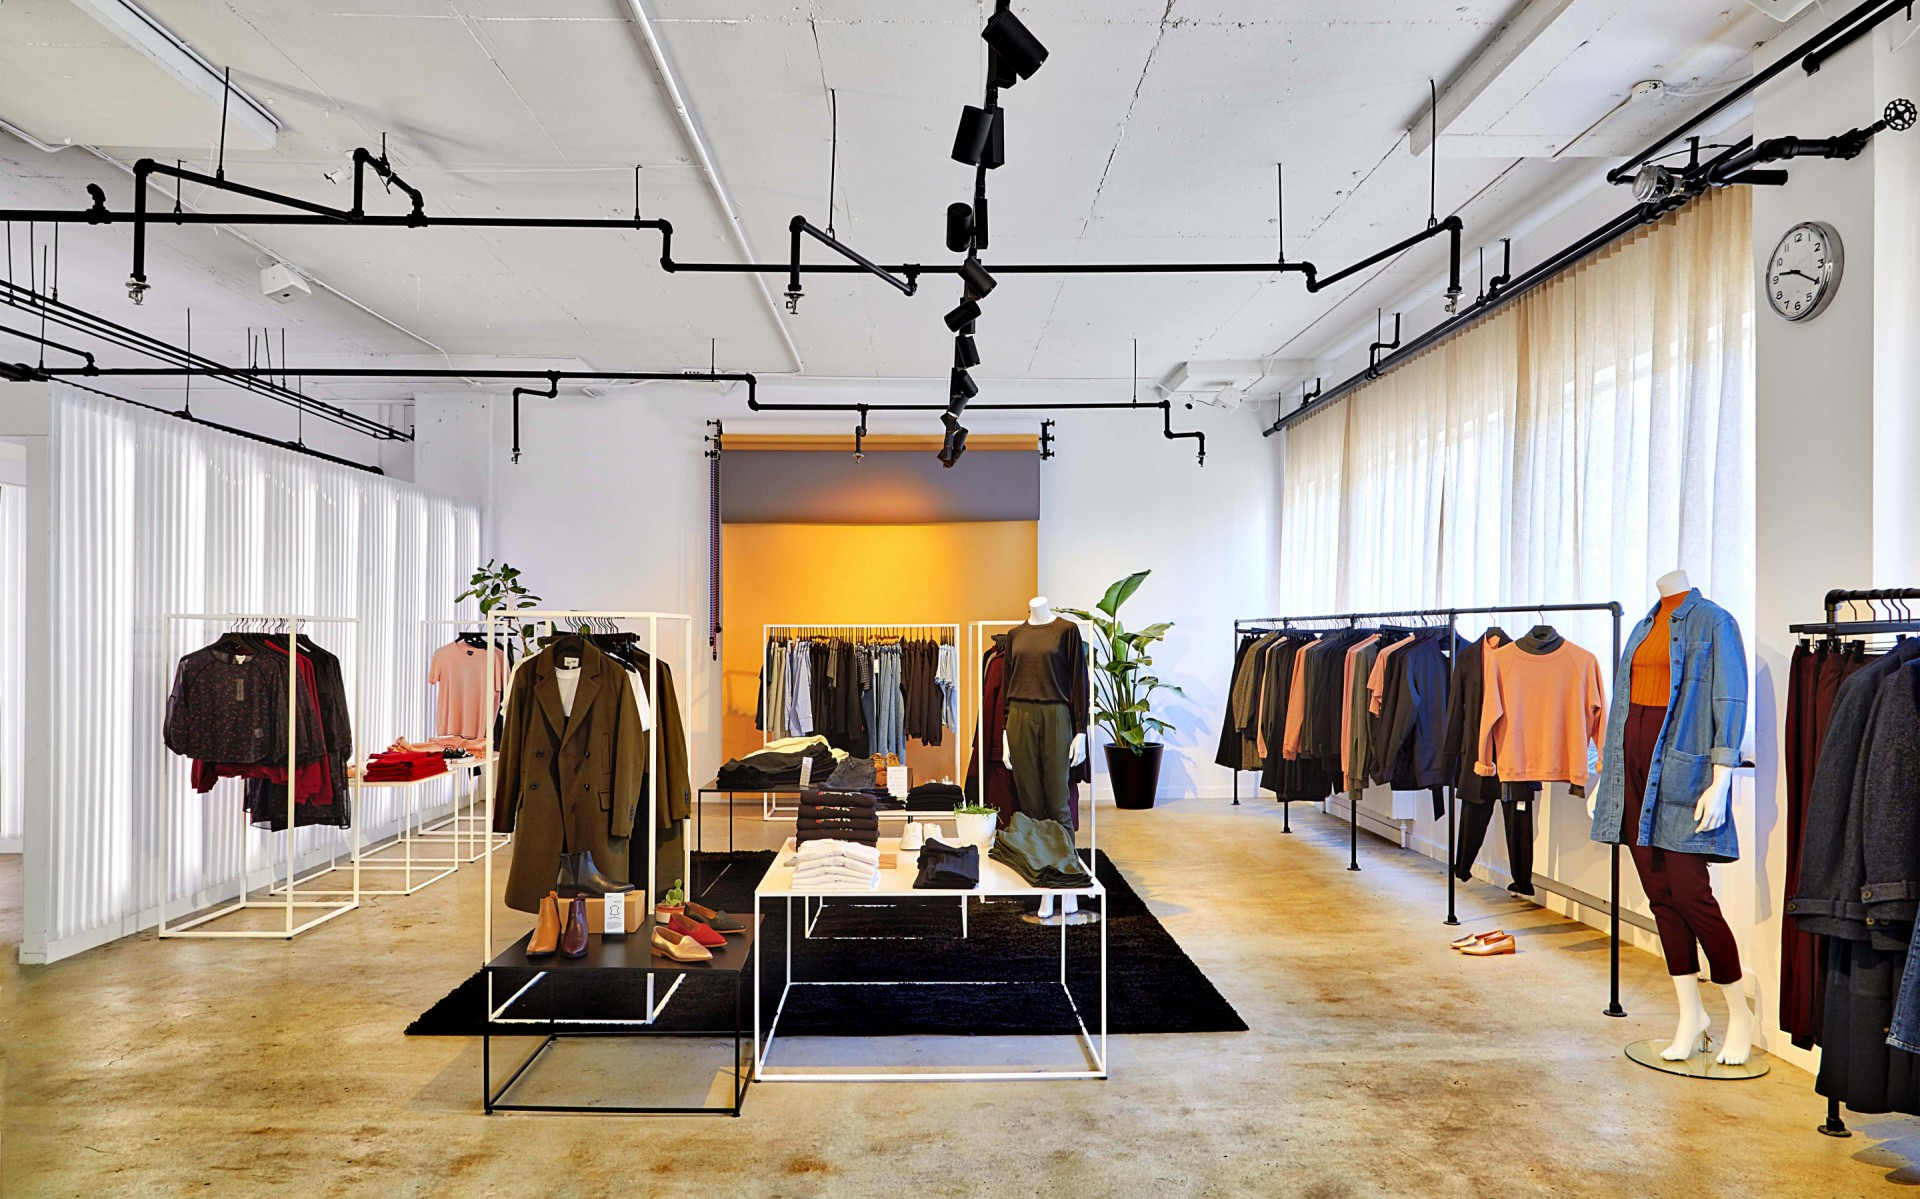 Frank And Oak introduced womenswear in its assortment in 2016 and decided to open women-dedicated retail spaces in fall 2017.